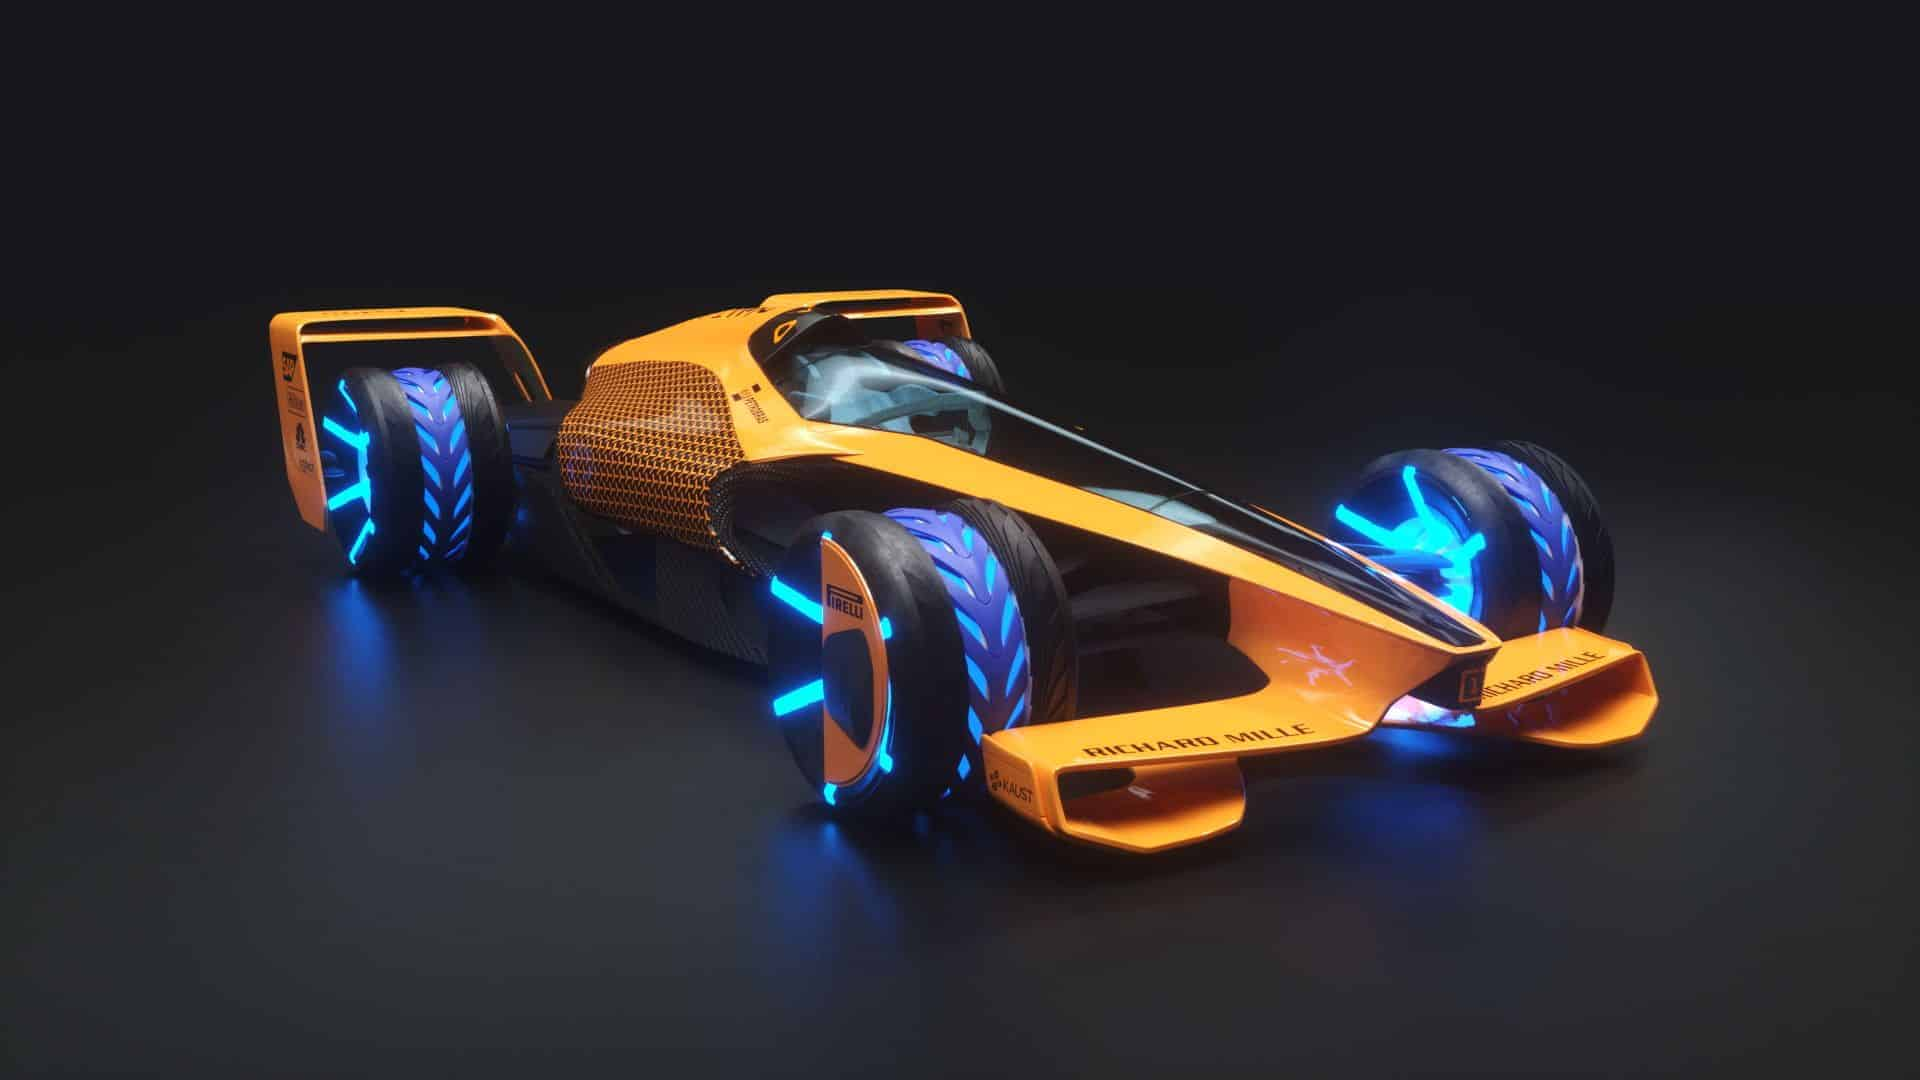 MCLExtreme Future Grand Prix F1 2050 front side Photo McLaren